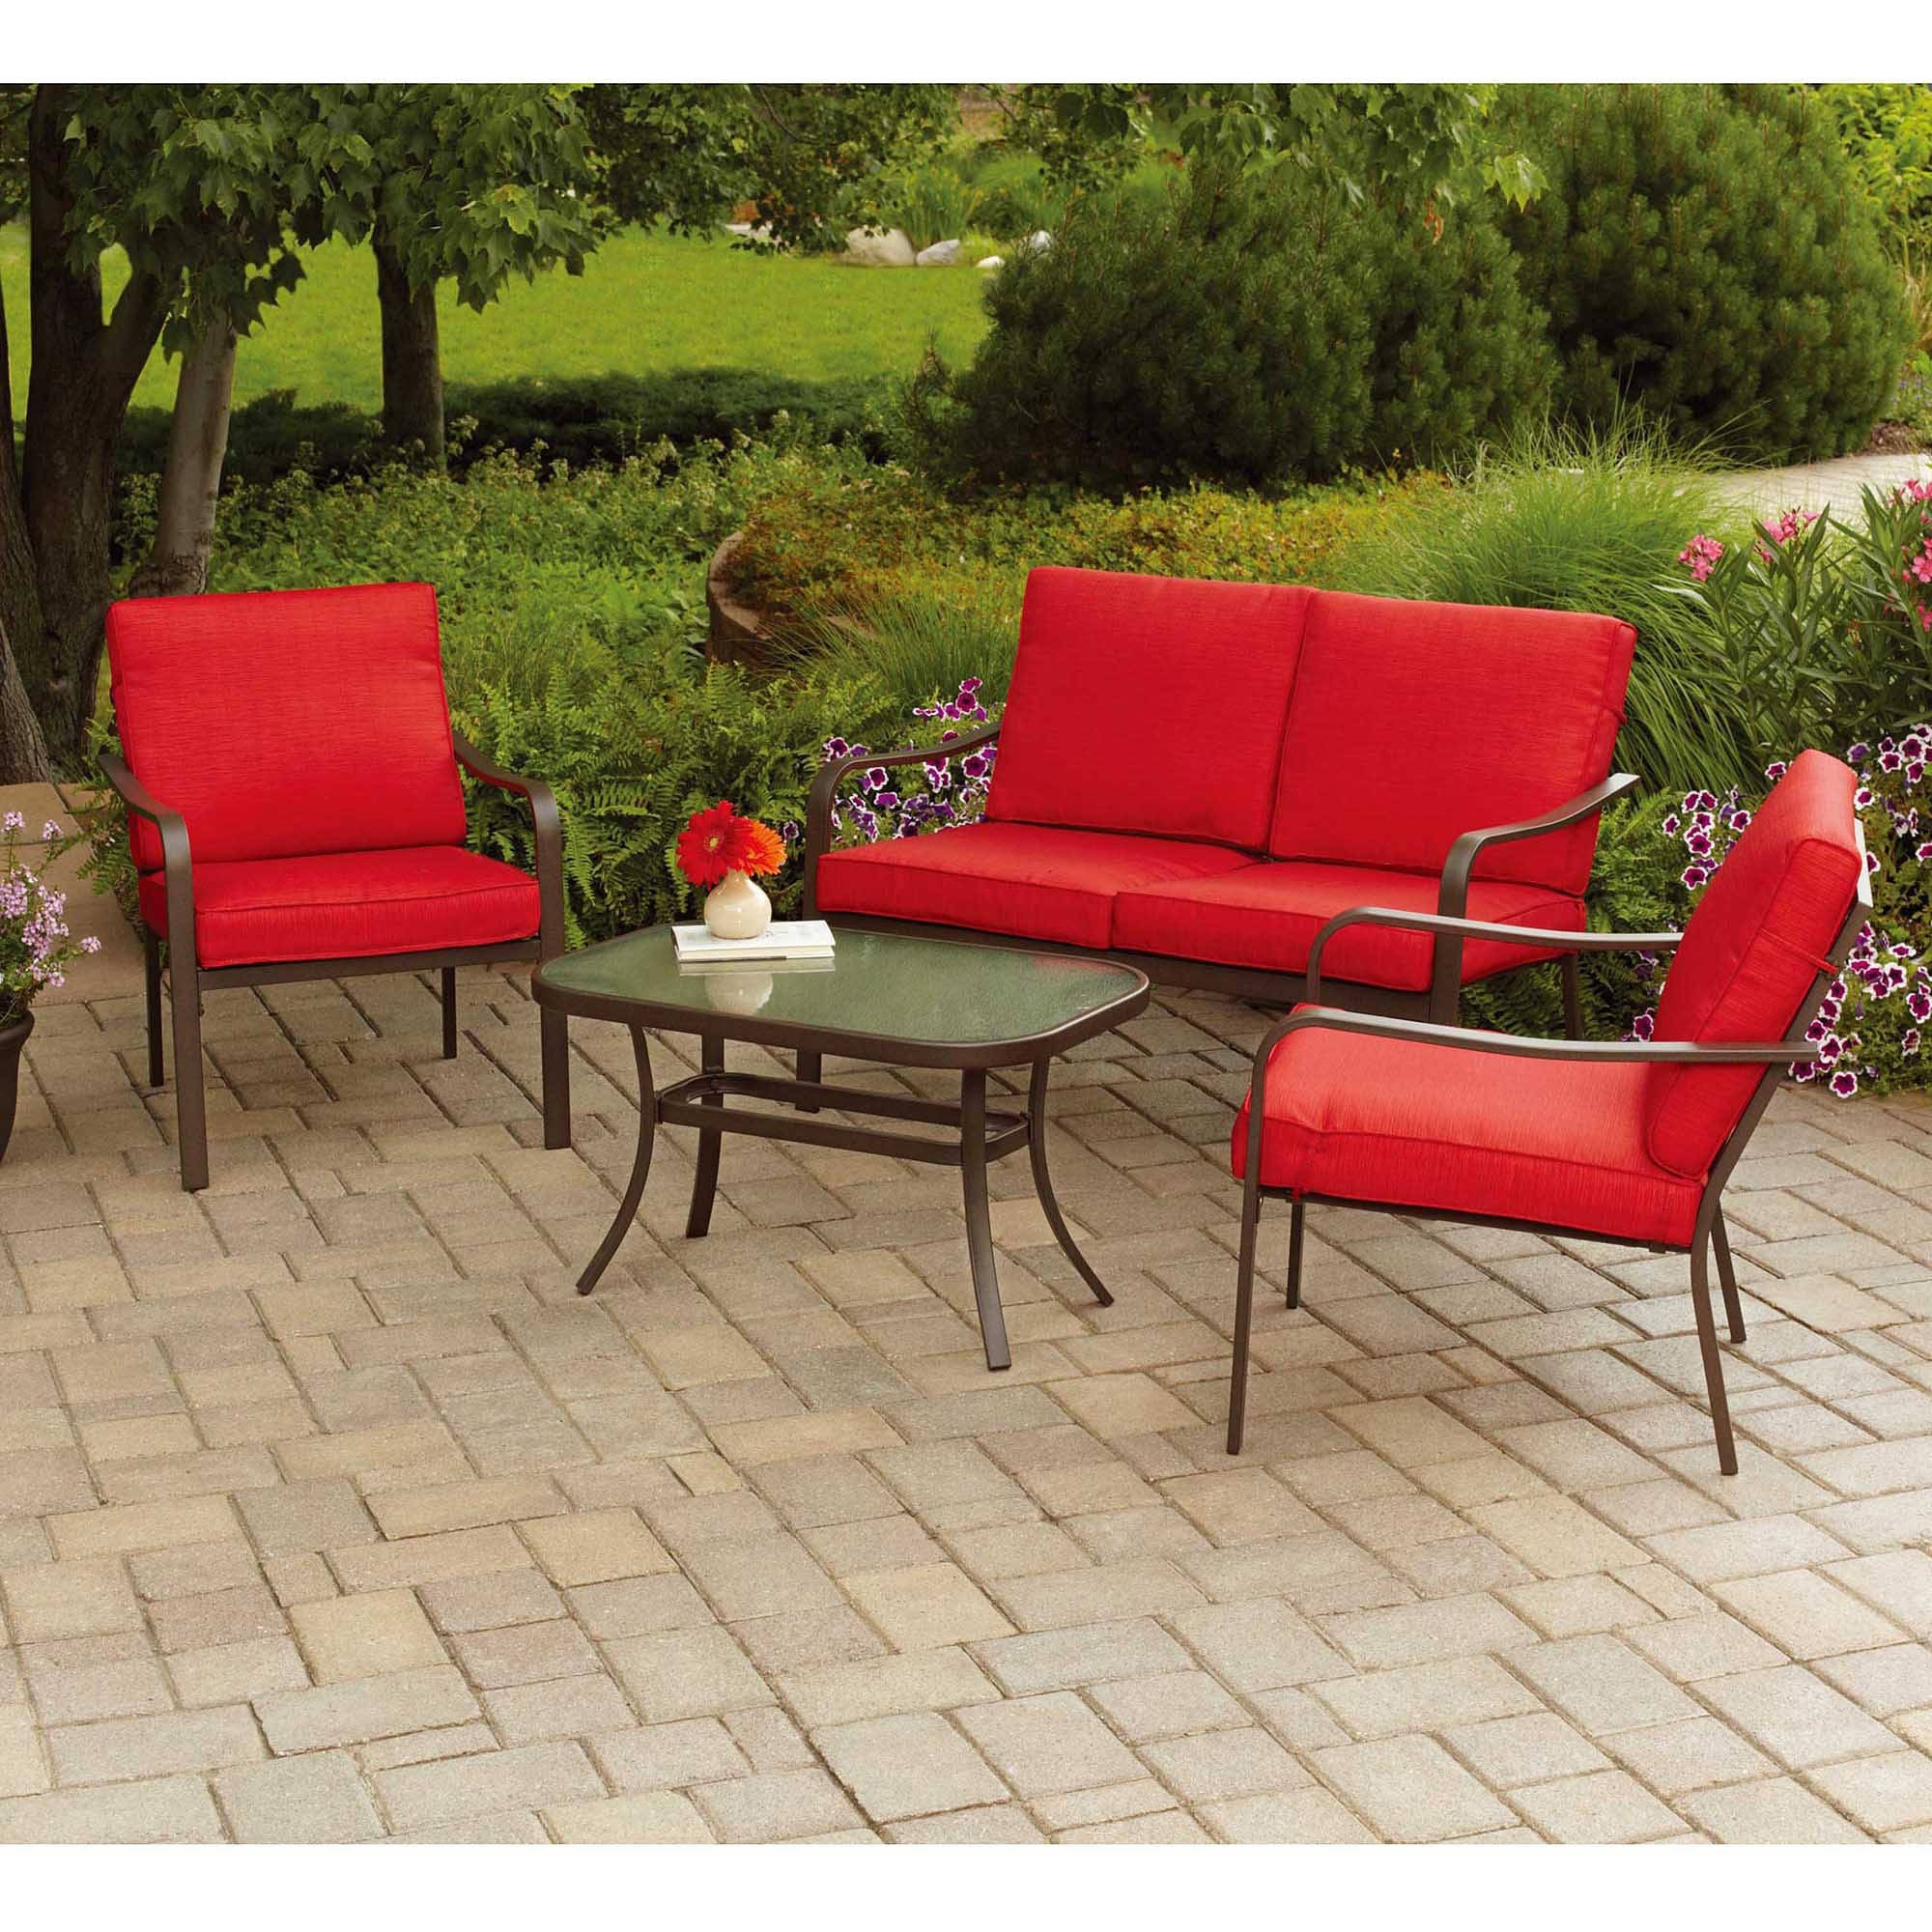 2018 Mainstays Stanton Cushioned 4 Piece Patio Conversation Set, Red Intended For Walmart Patio Furniture Conversation Sets (View 1 of 20)